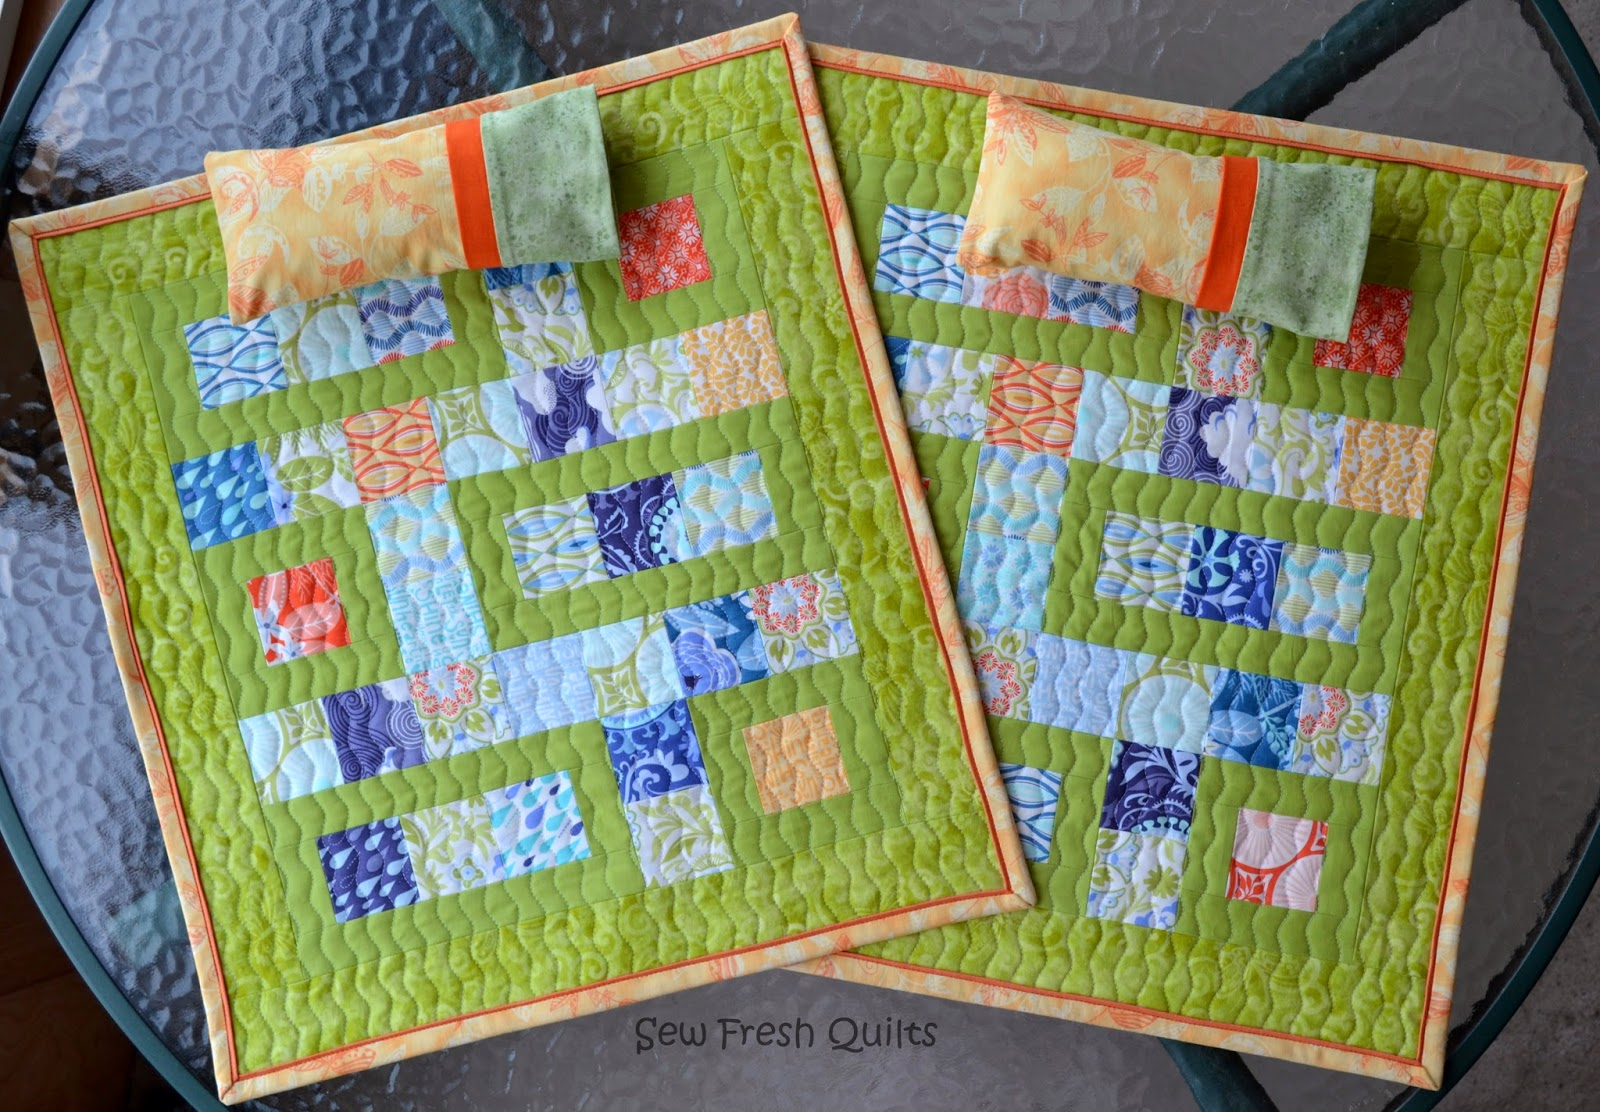 http://sewfreshquilts.blogspot.ca/2014/02/lets-bee-social-9.html